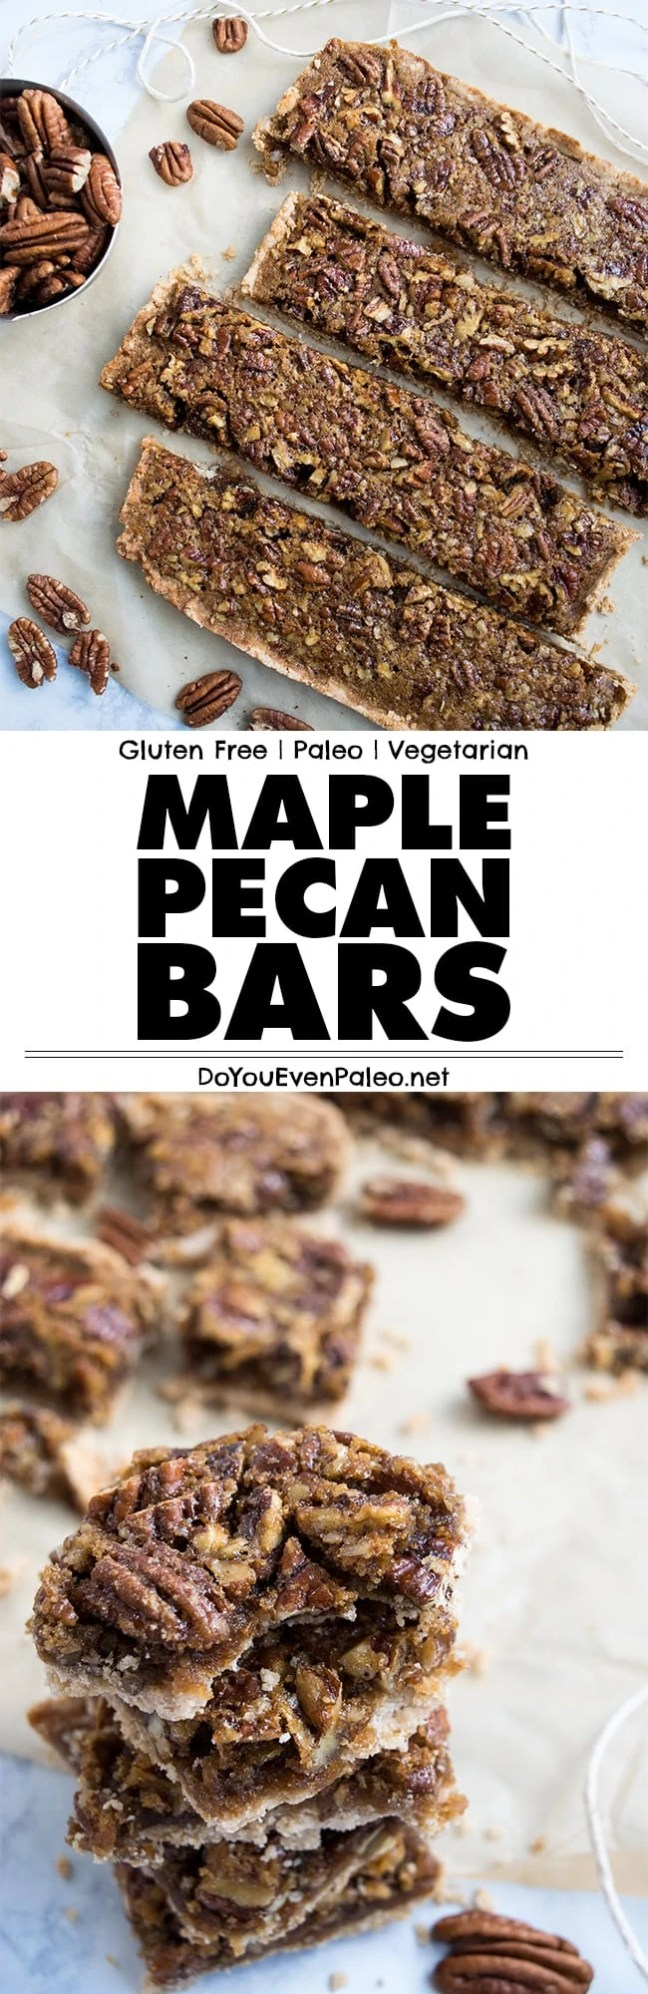 Rich, gooey Maple Pecan Bars that will remind you of pecan pie! It's gluten free and paleo. | DoYouEvenPaleo.net